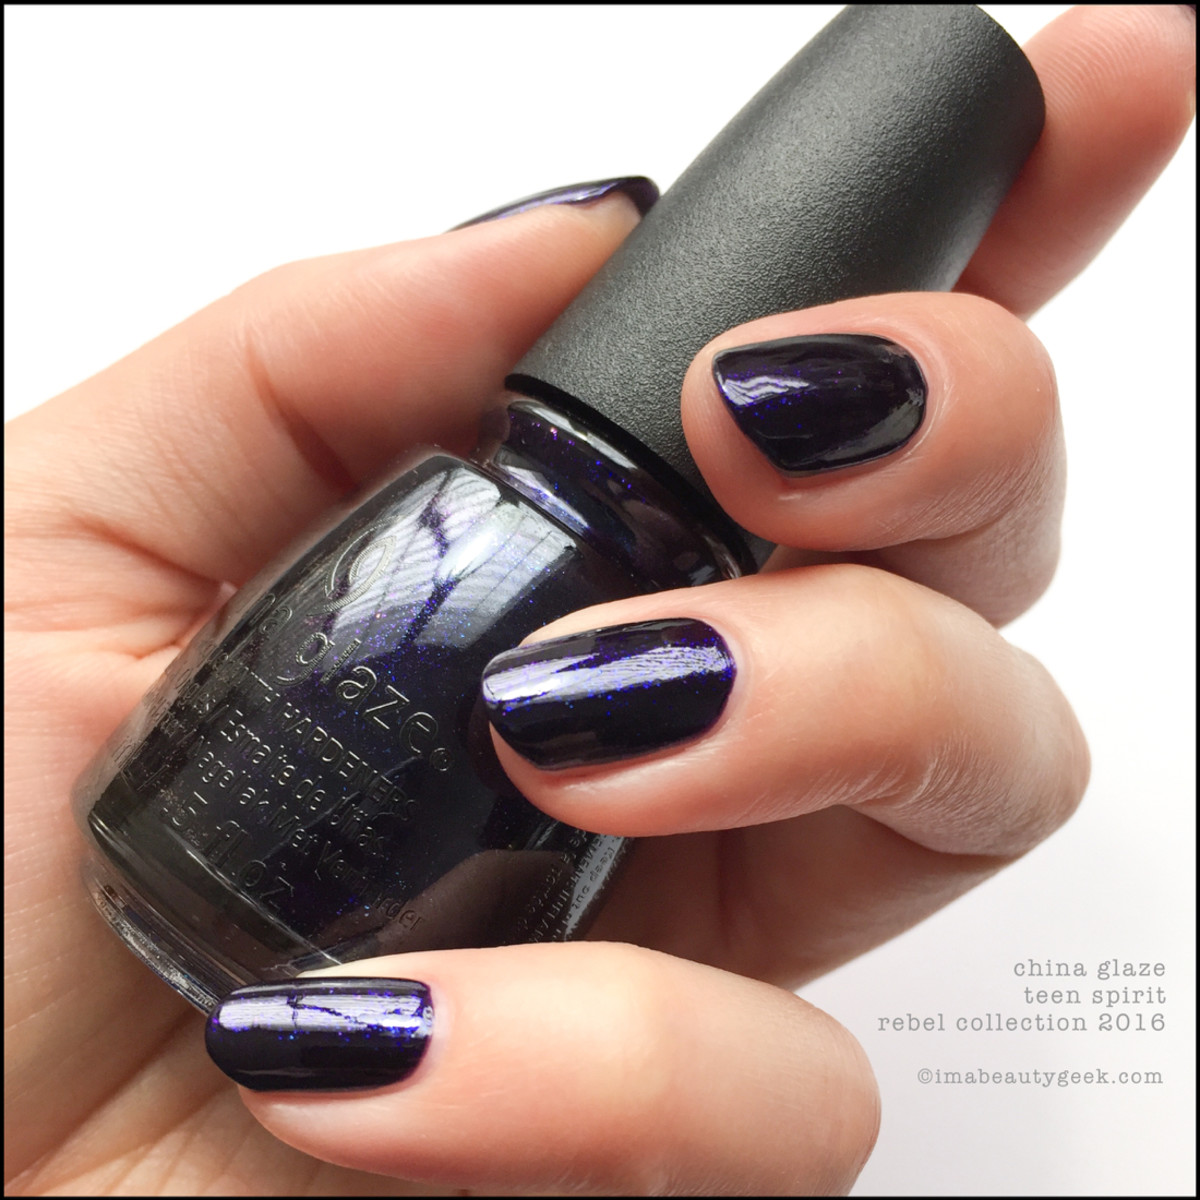 China Glaze Teen Spirit_China Glaze Rebel 2016 Collection Swatches Review